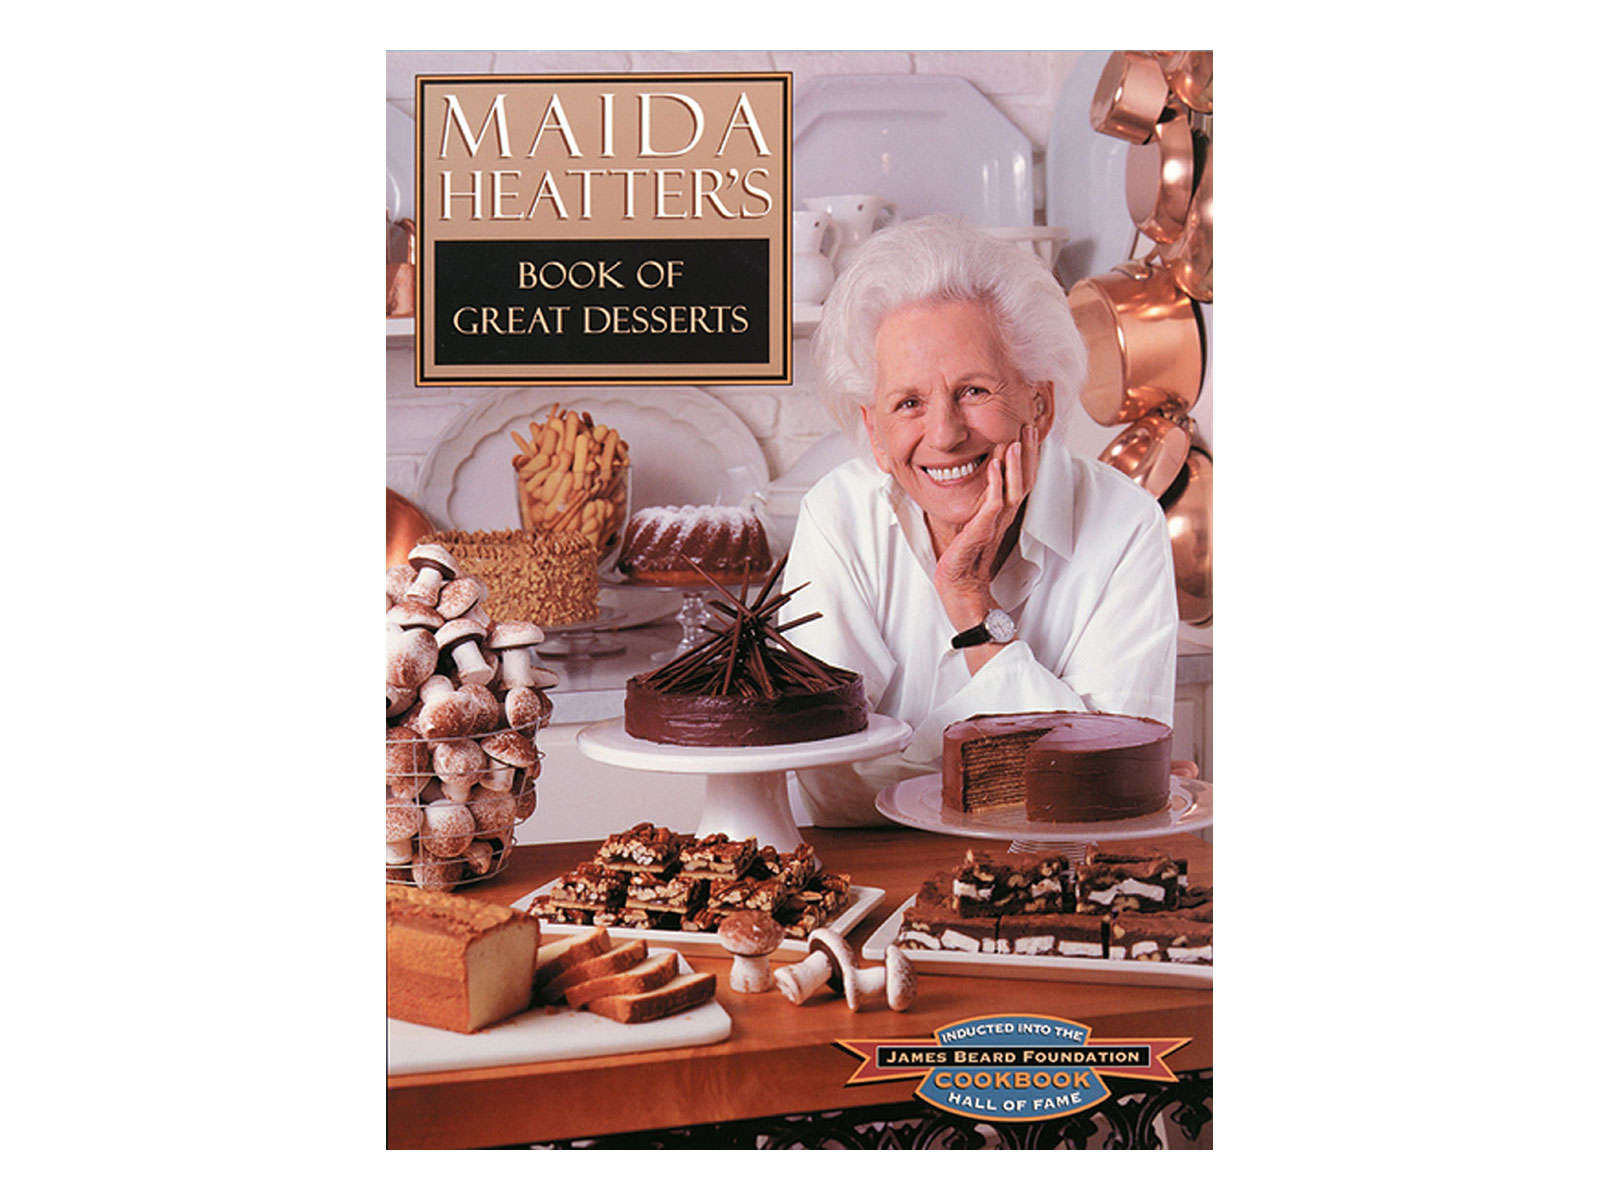 Best Baking Cookbooks Maida Heatter's Great Desserts